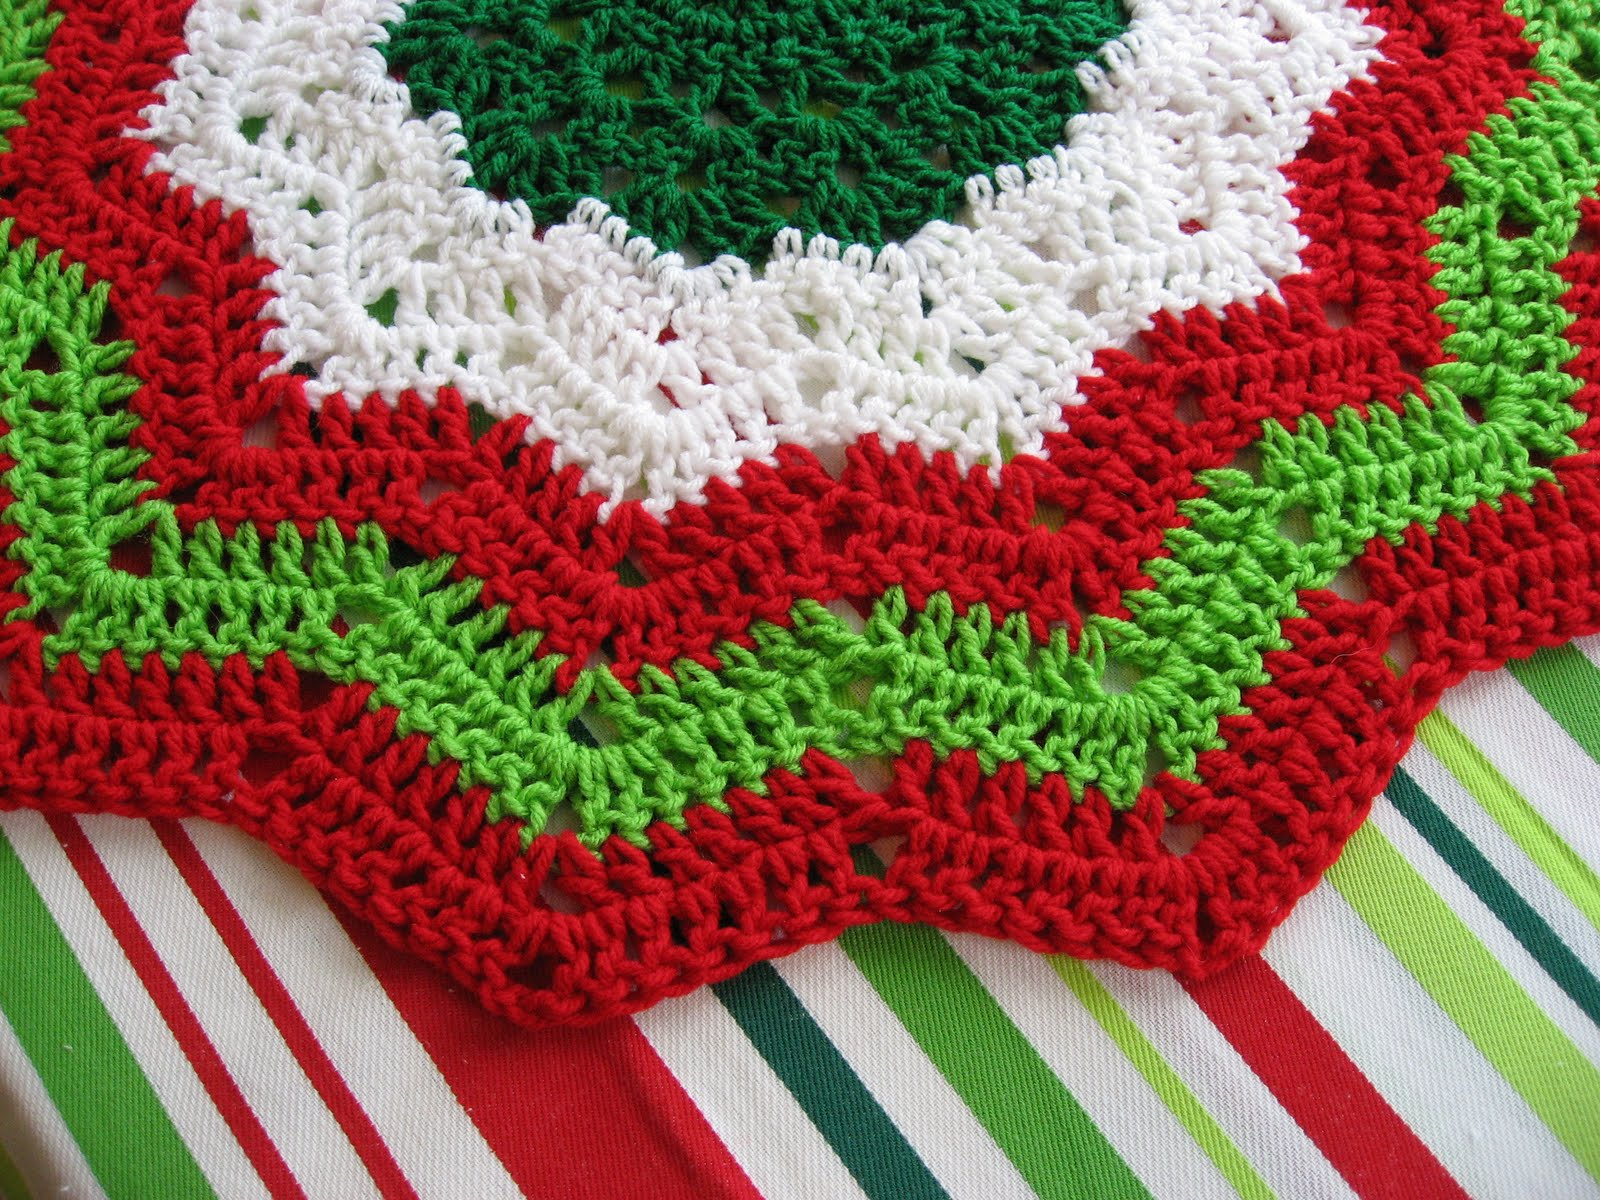 Free Online Christmas Crochet Afghan Patterns : CHRISTMAS CROCHET PATTERN RIPPLE SKIRT TREE Crochet Patterns